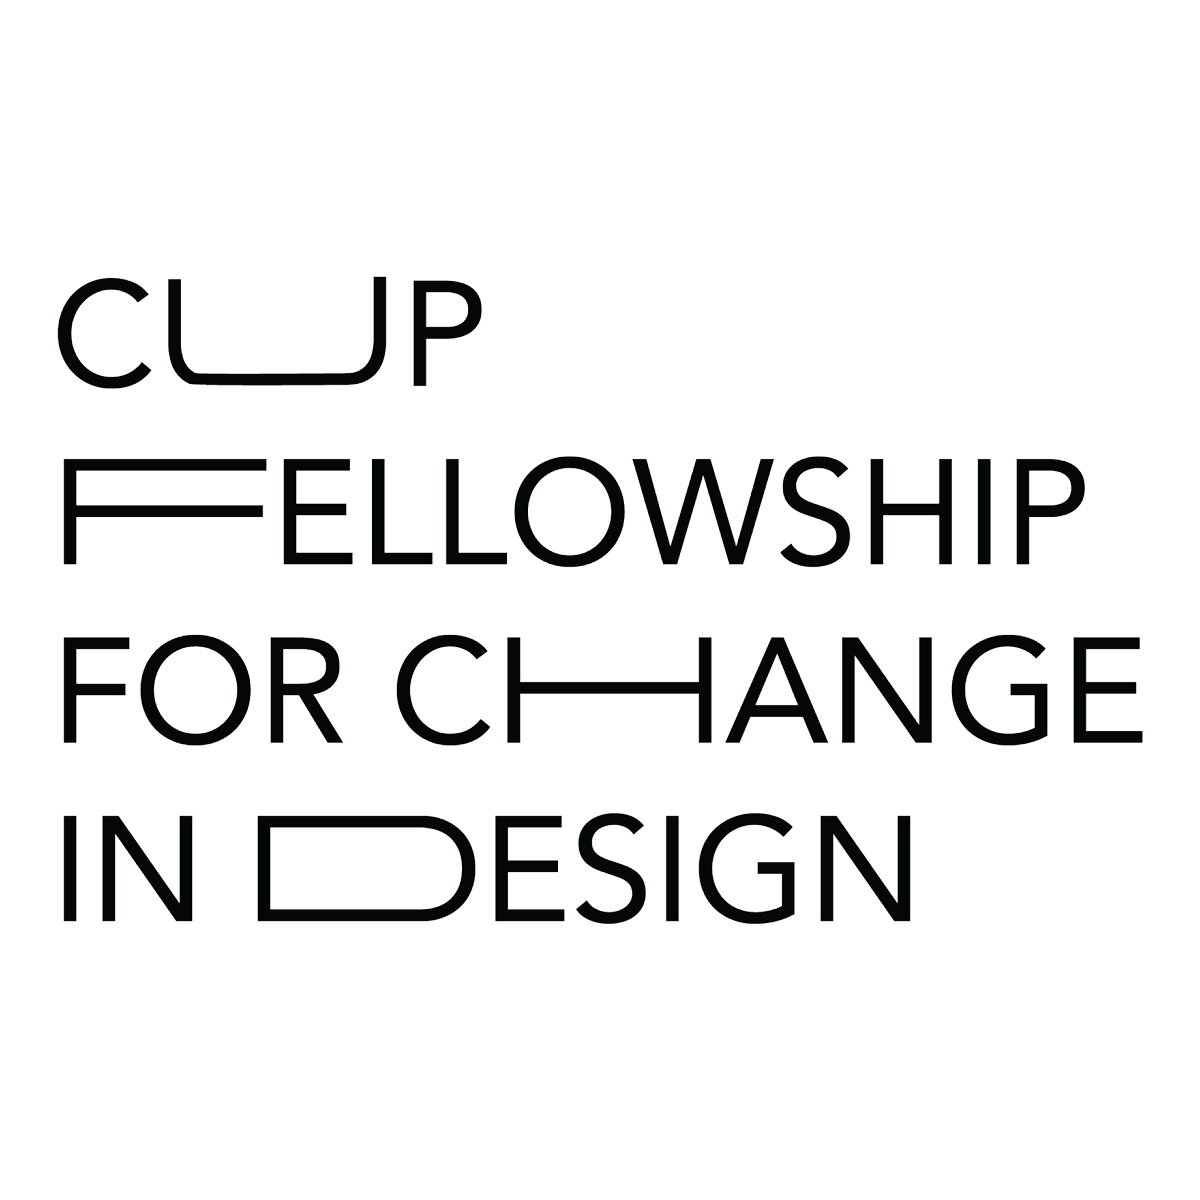 2018 CUP Fellow for Change in Design